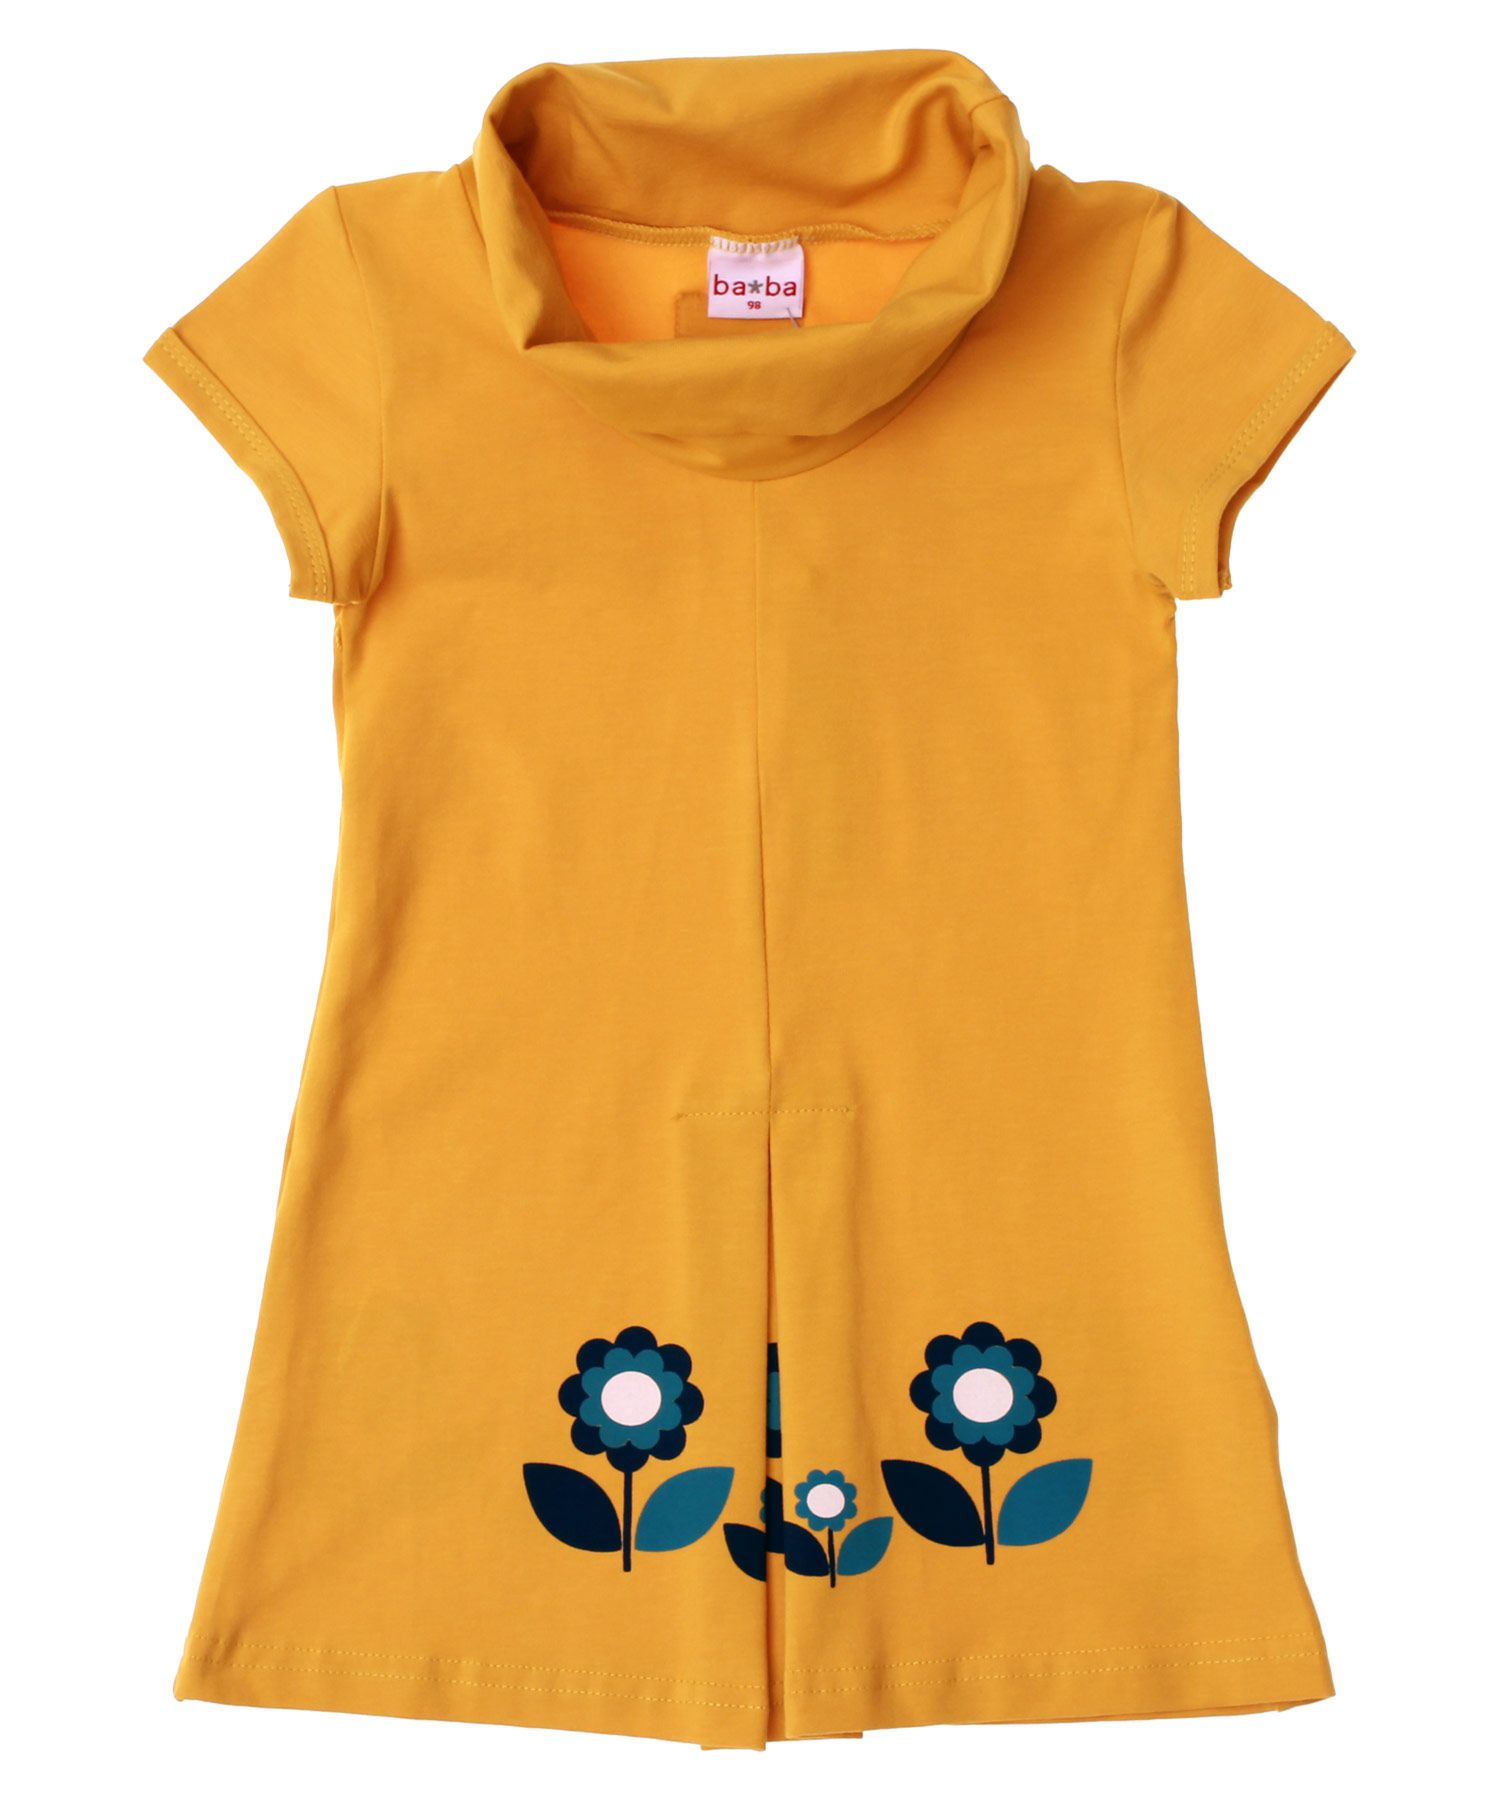 Baba Babywear Gorgeous Yellow Dress With Collar And Little